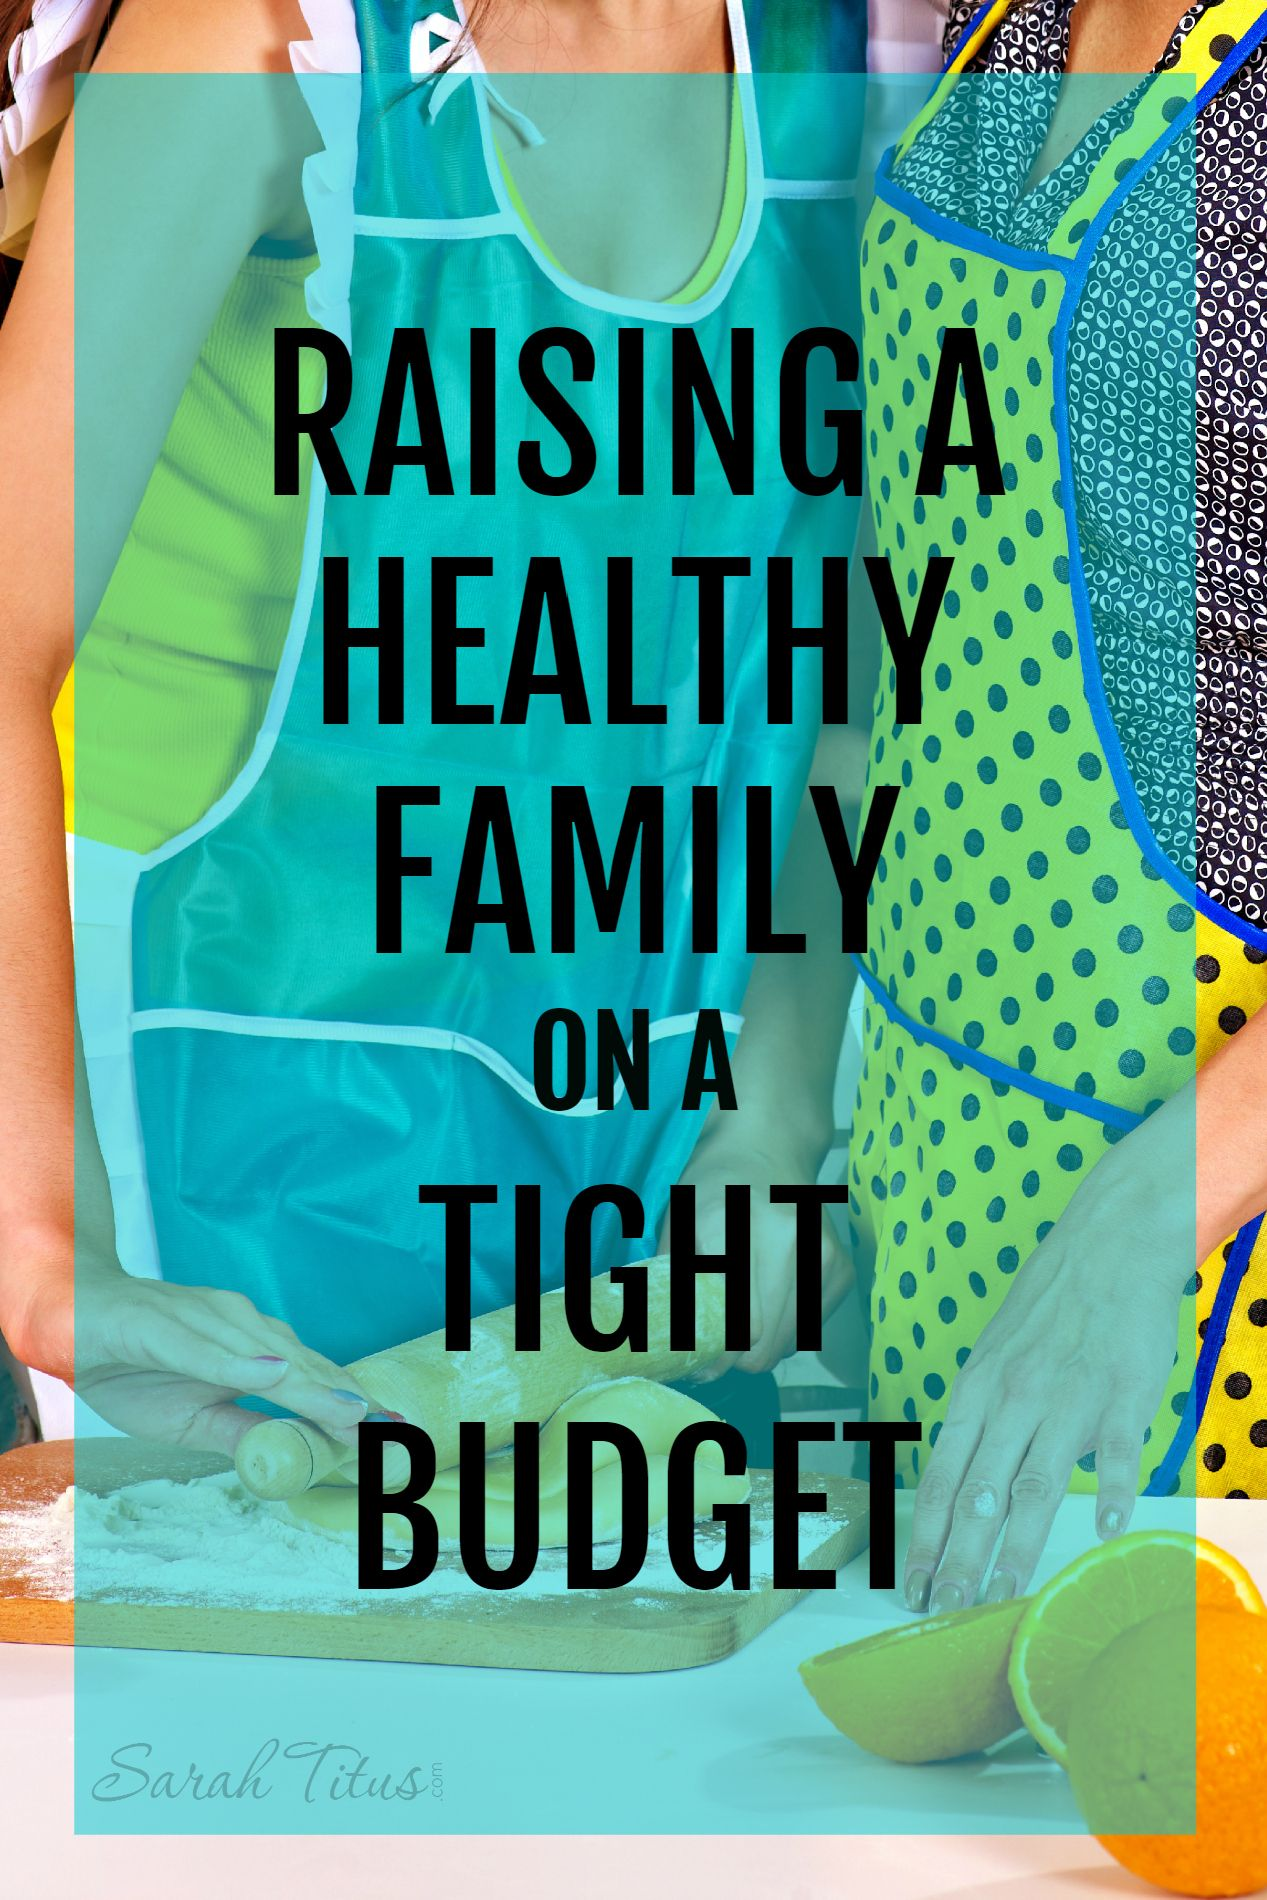 Are You Looking To Help Your Family Get Healthier This